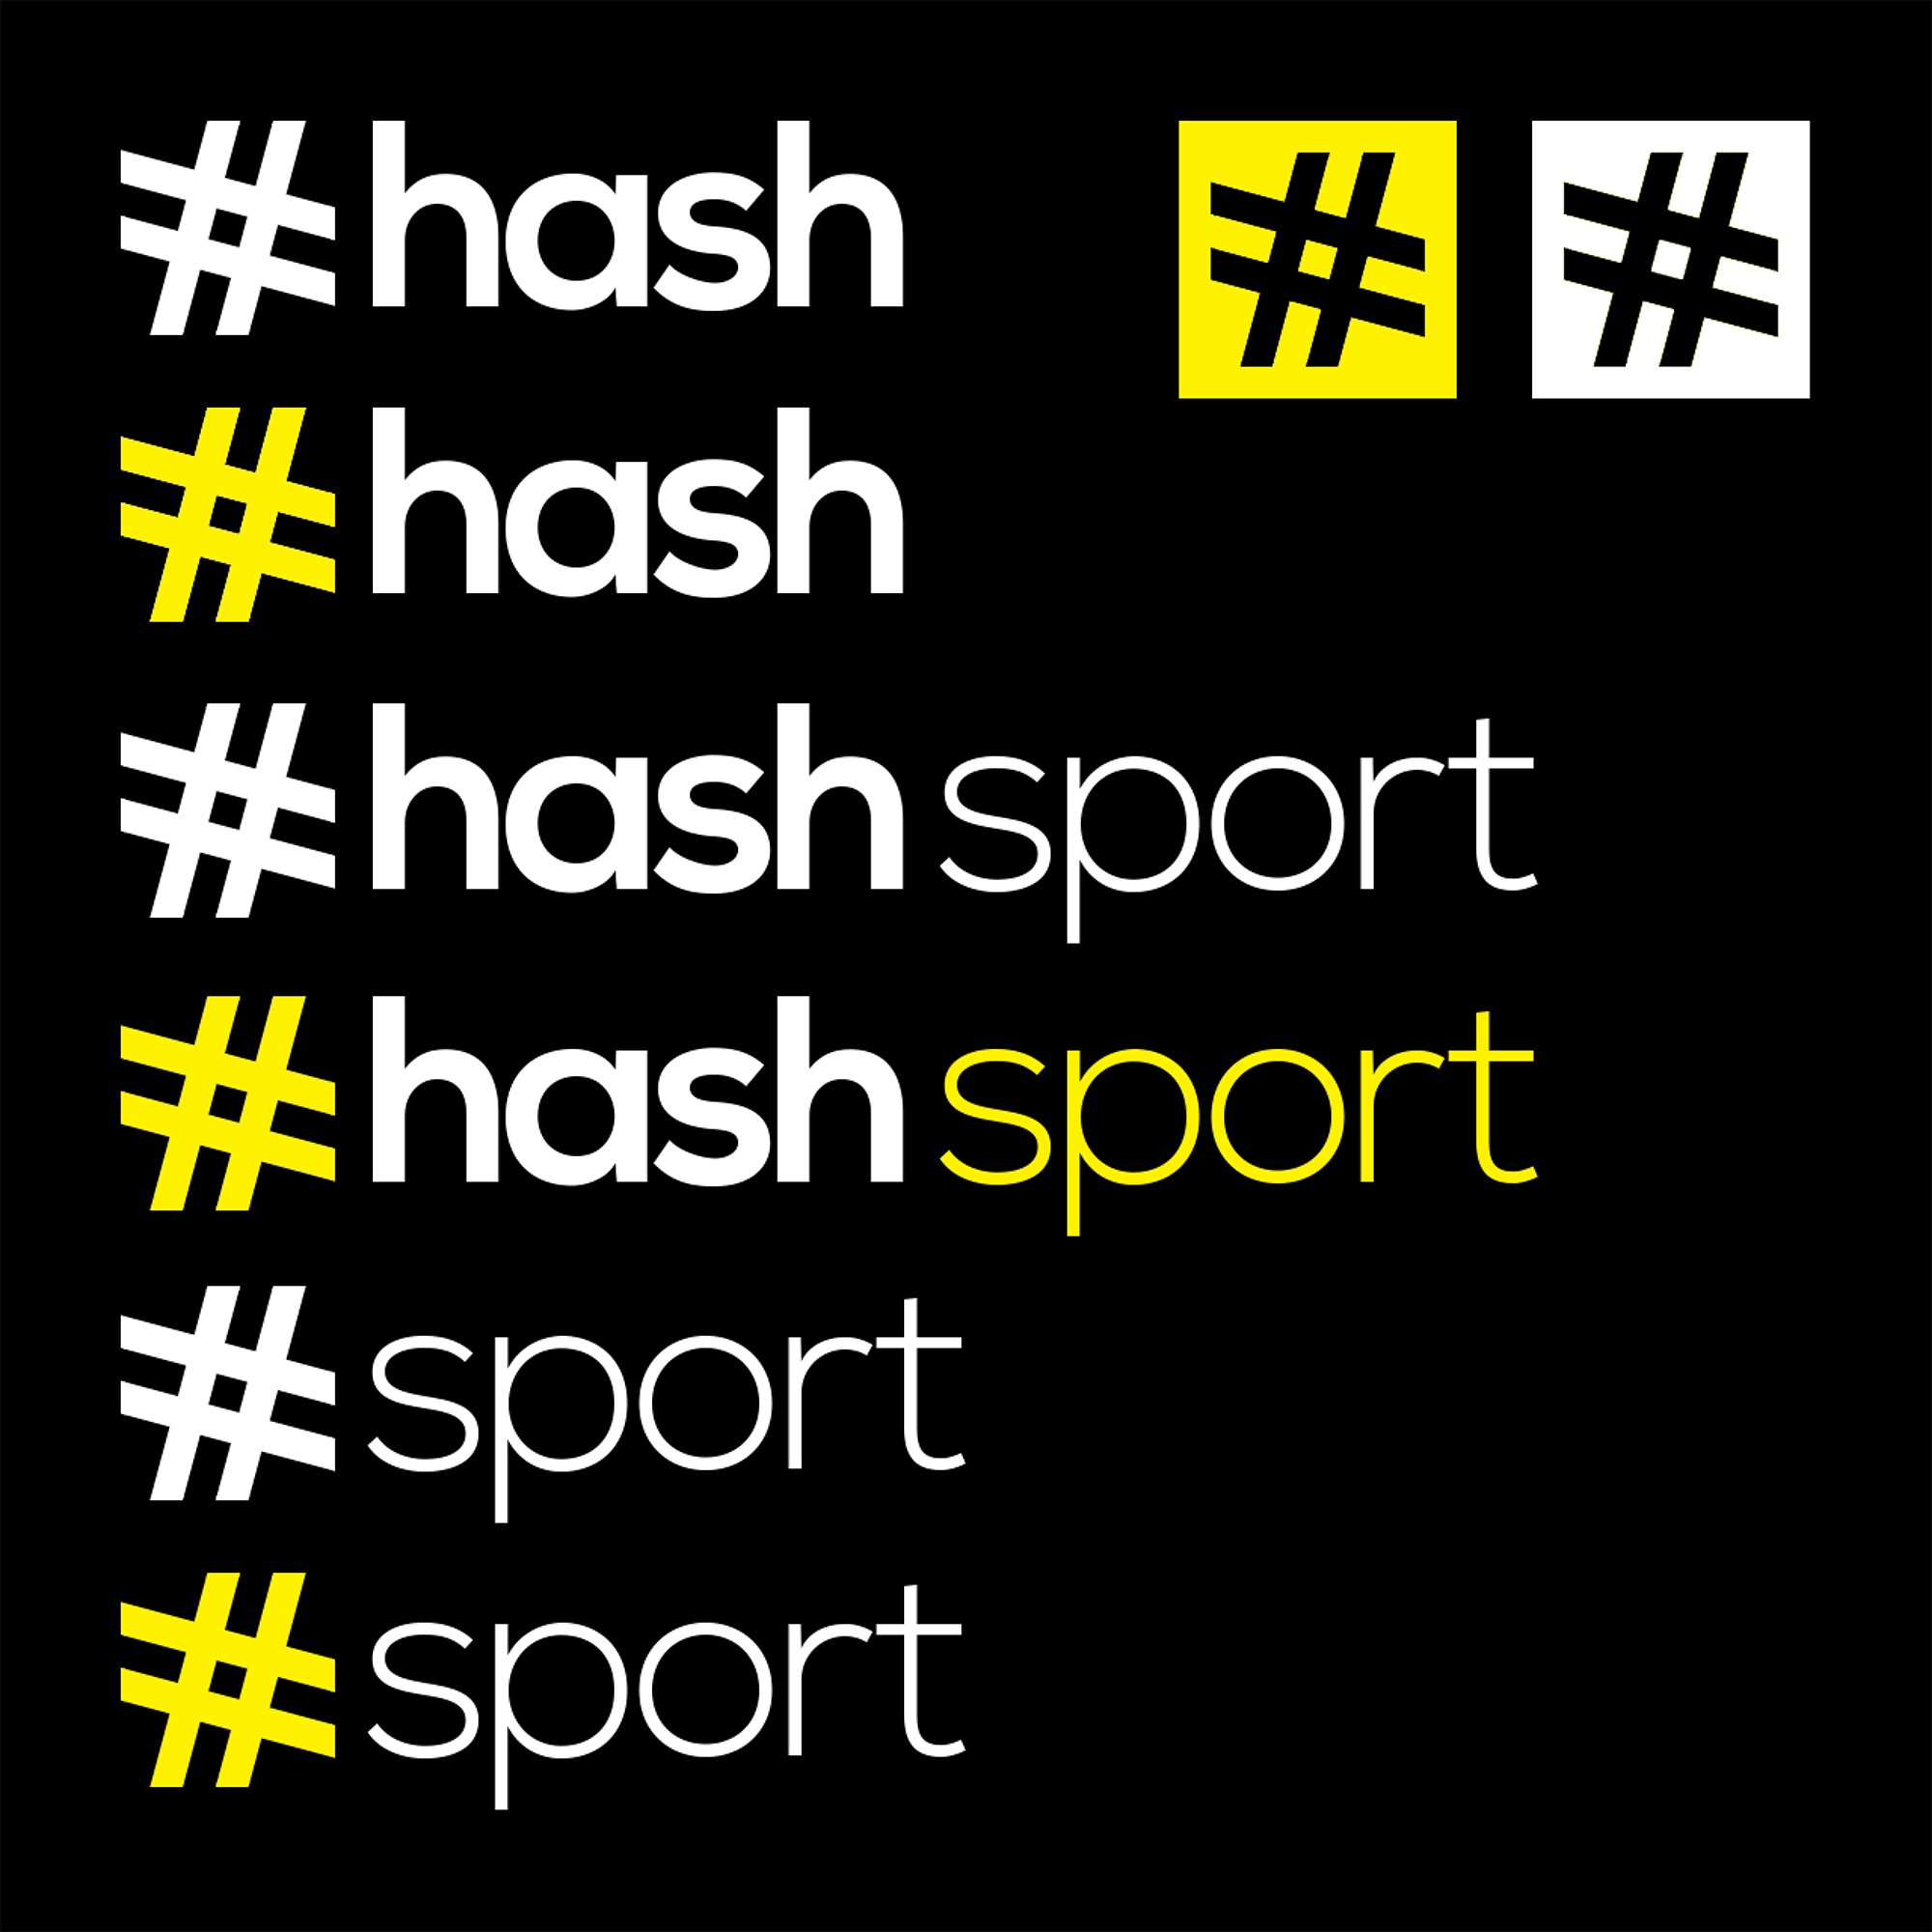 hash is a clothing brand focused on contemporary sports